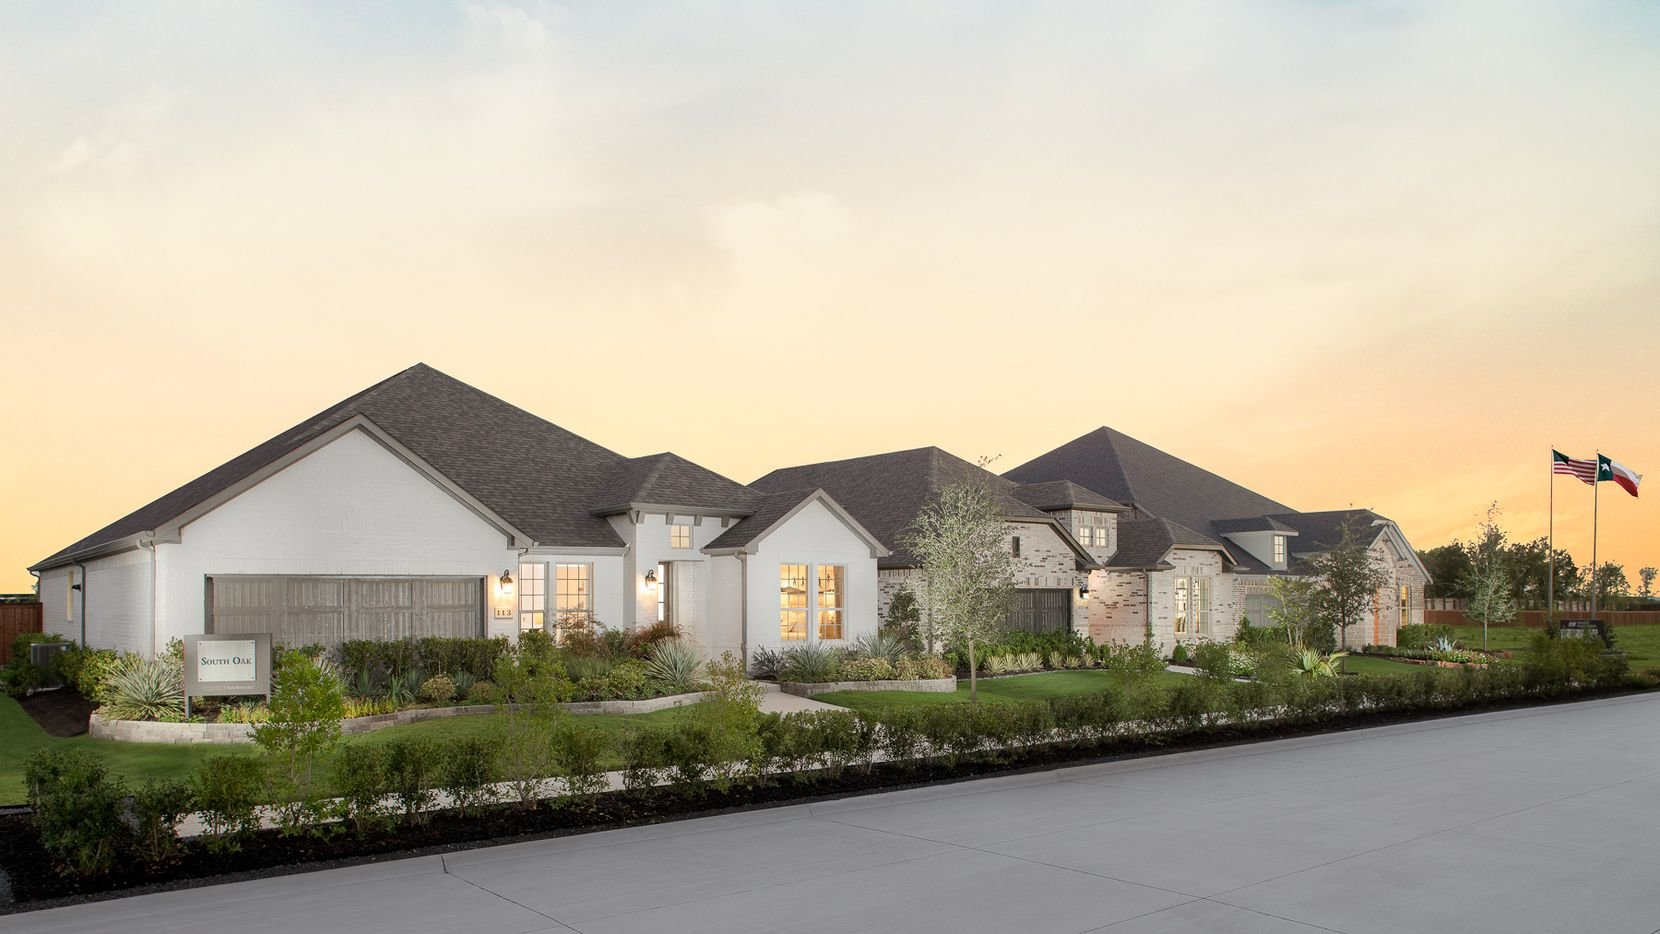 South Oak New Homes For Sale on Lewisville Lake in Oak Point, TX